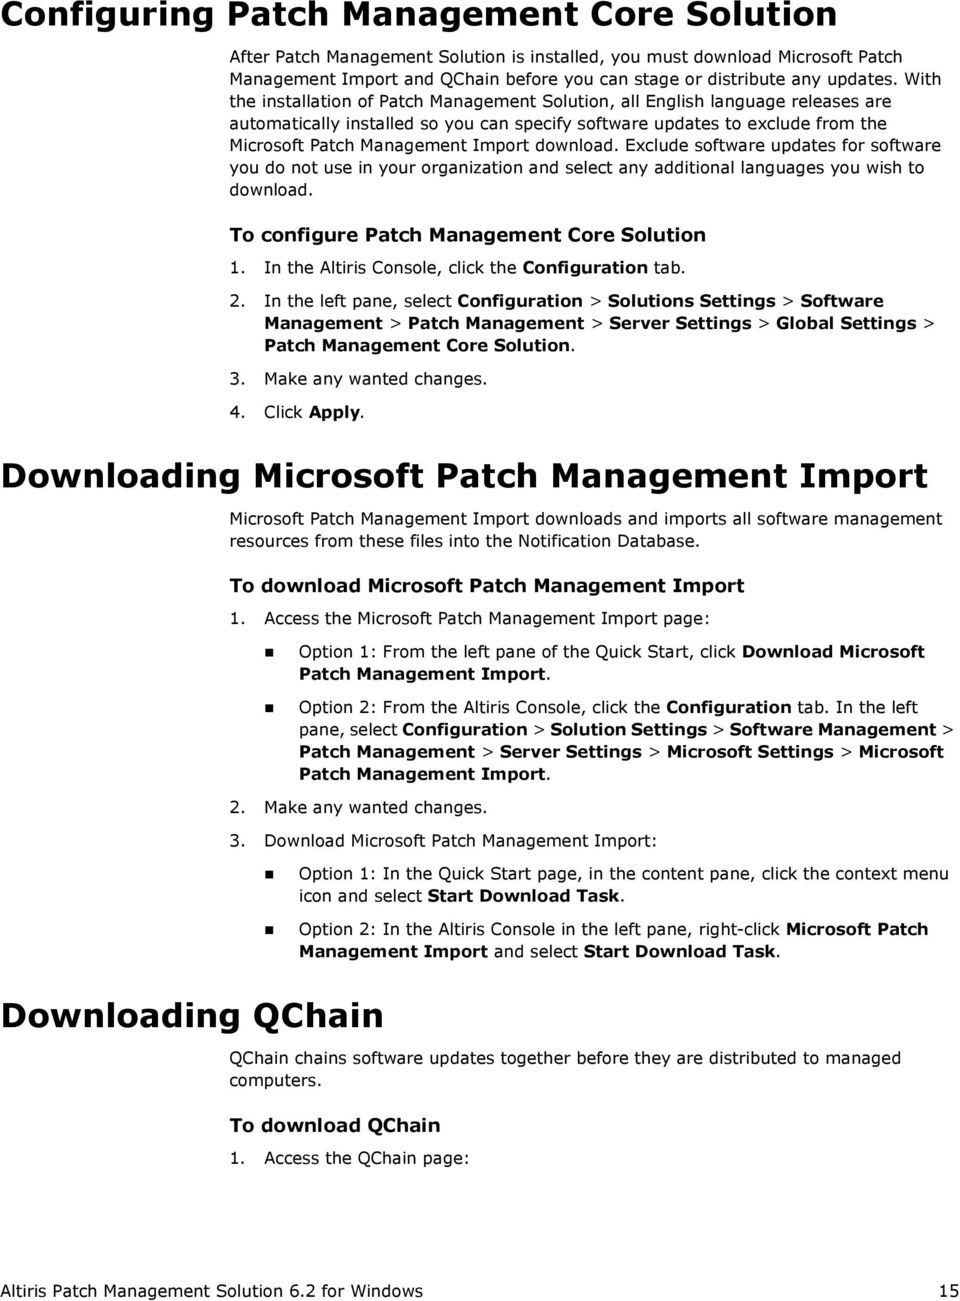 download. Exclude software updates for software you do not use in your organization and select any additional languages you wish to download. To configure Patch Management Core Solution 1.